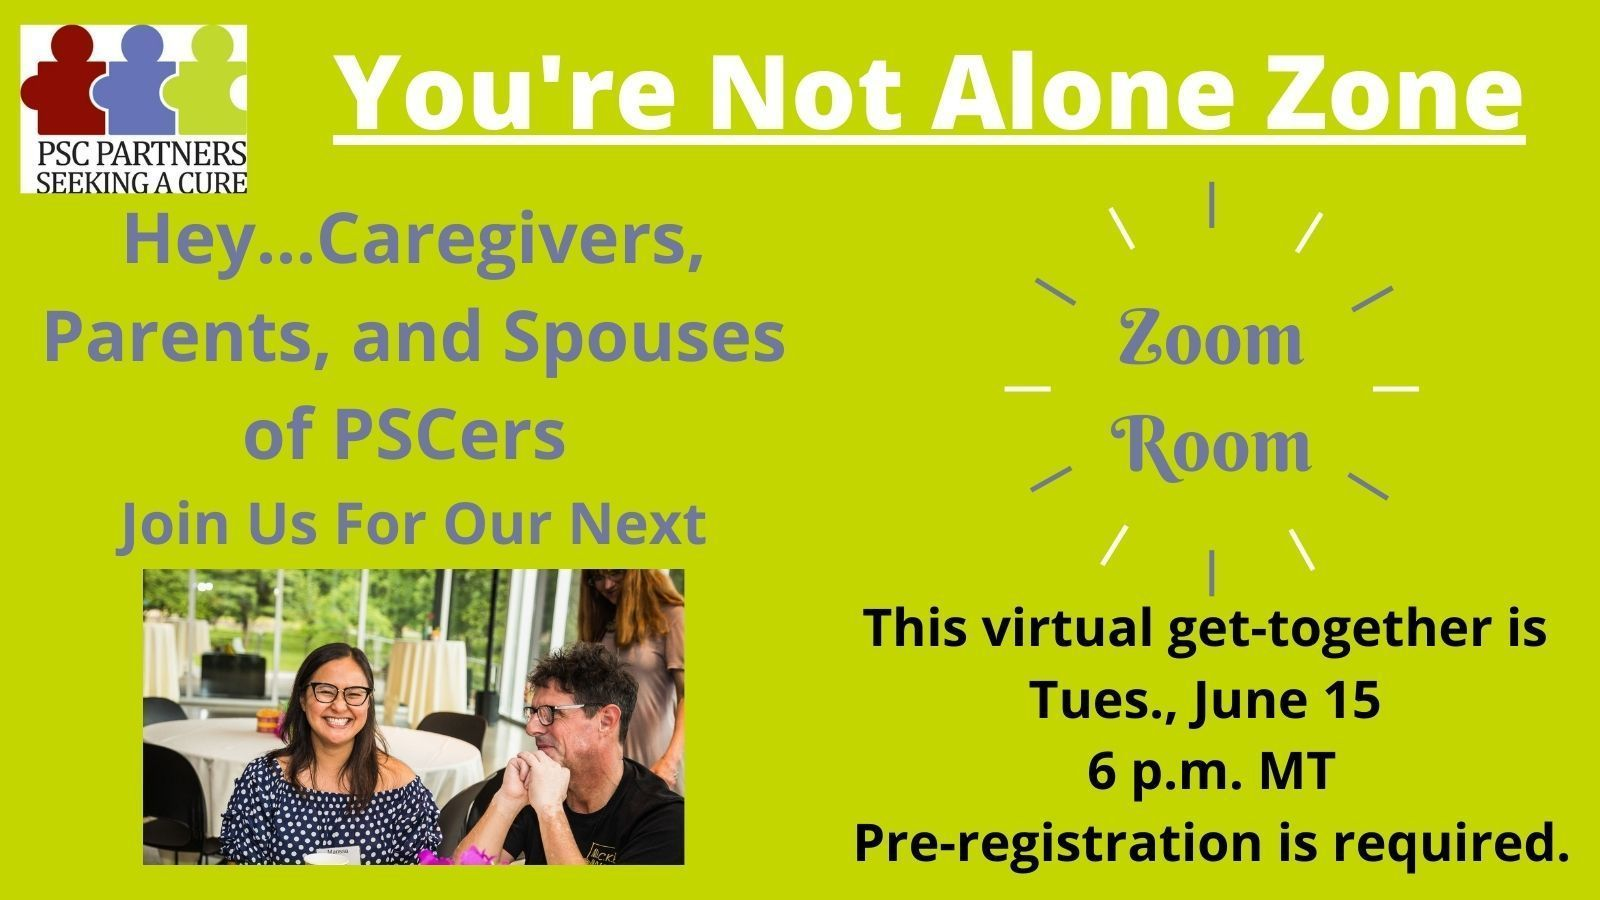 ZoomRoom for Caregivers/Spouses/Parents